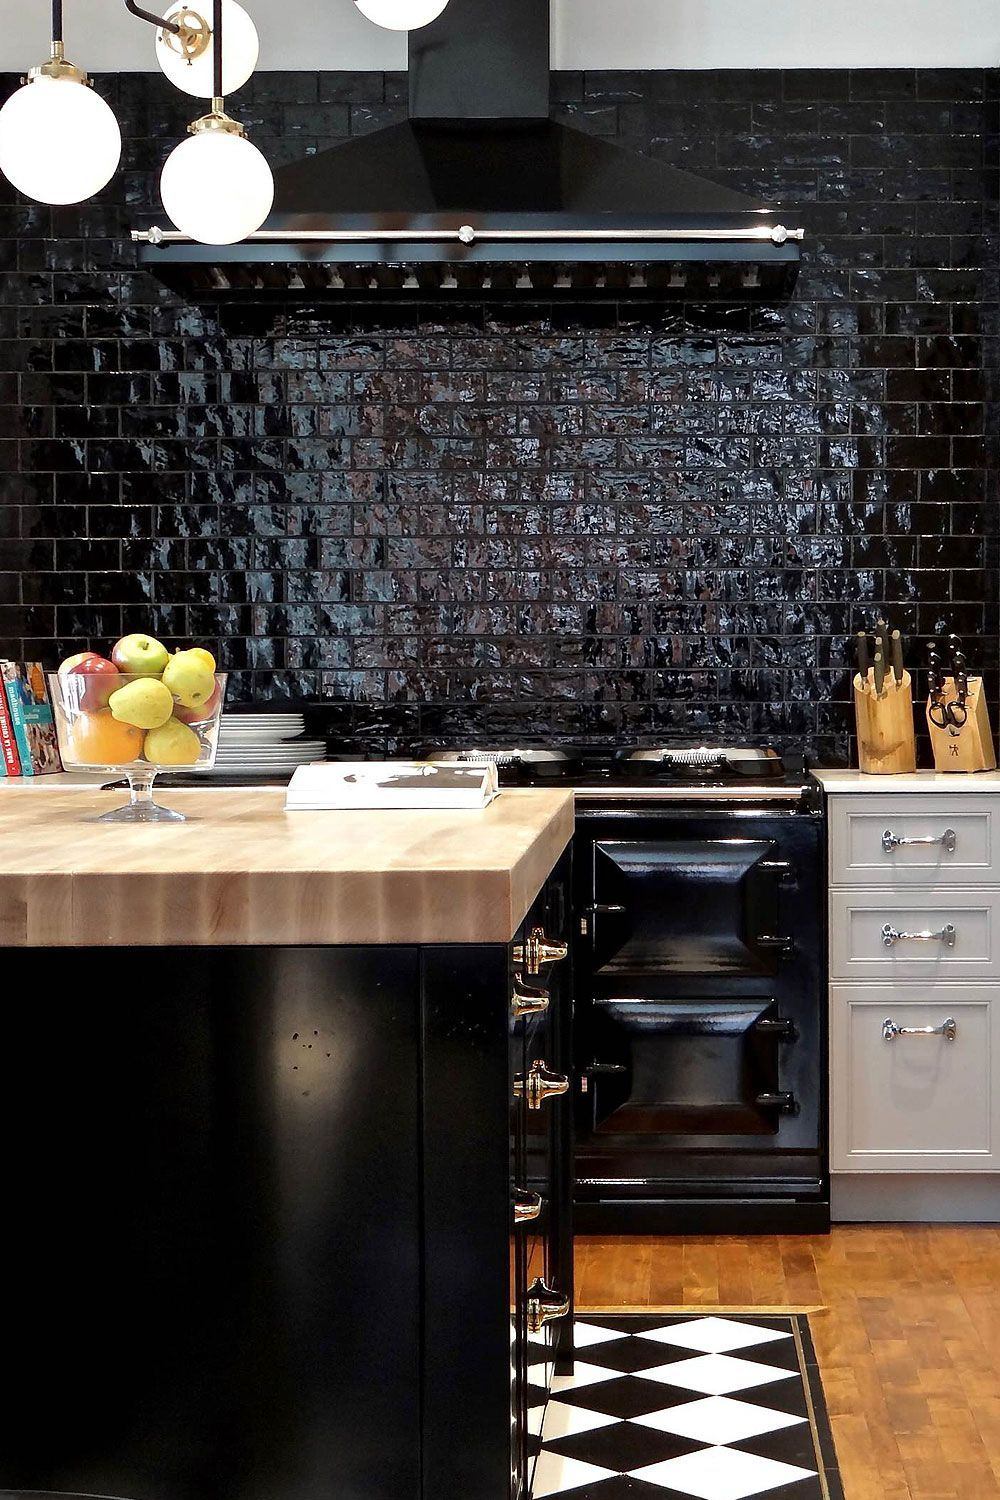 31+ Black Subway Backsplash ( Ideas ) - The Power of Black ... on Backsplash Ideas For Black Countertops  id=23761